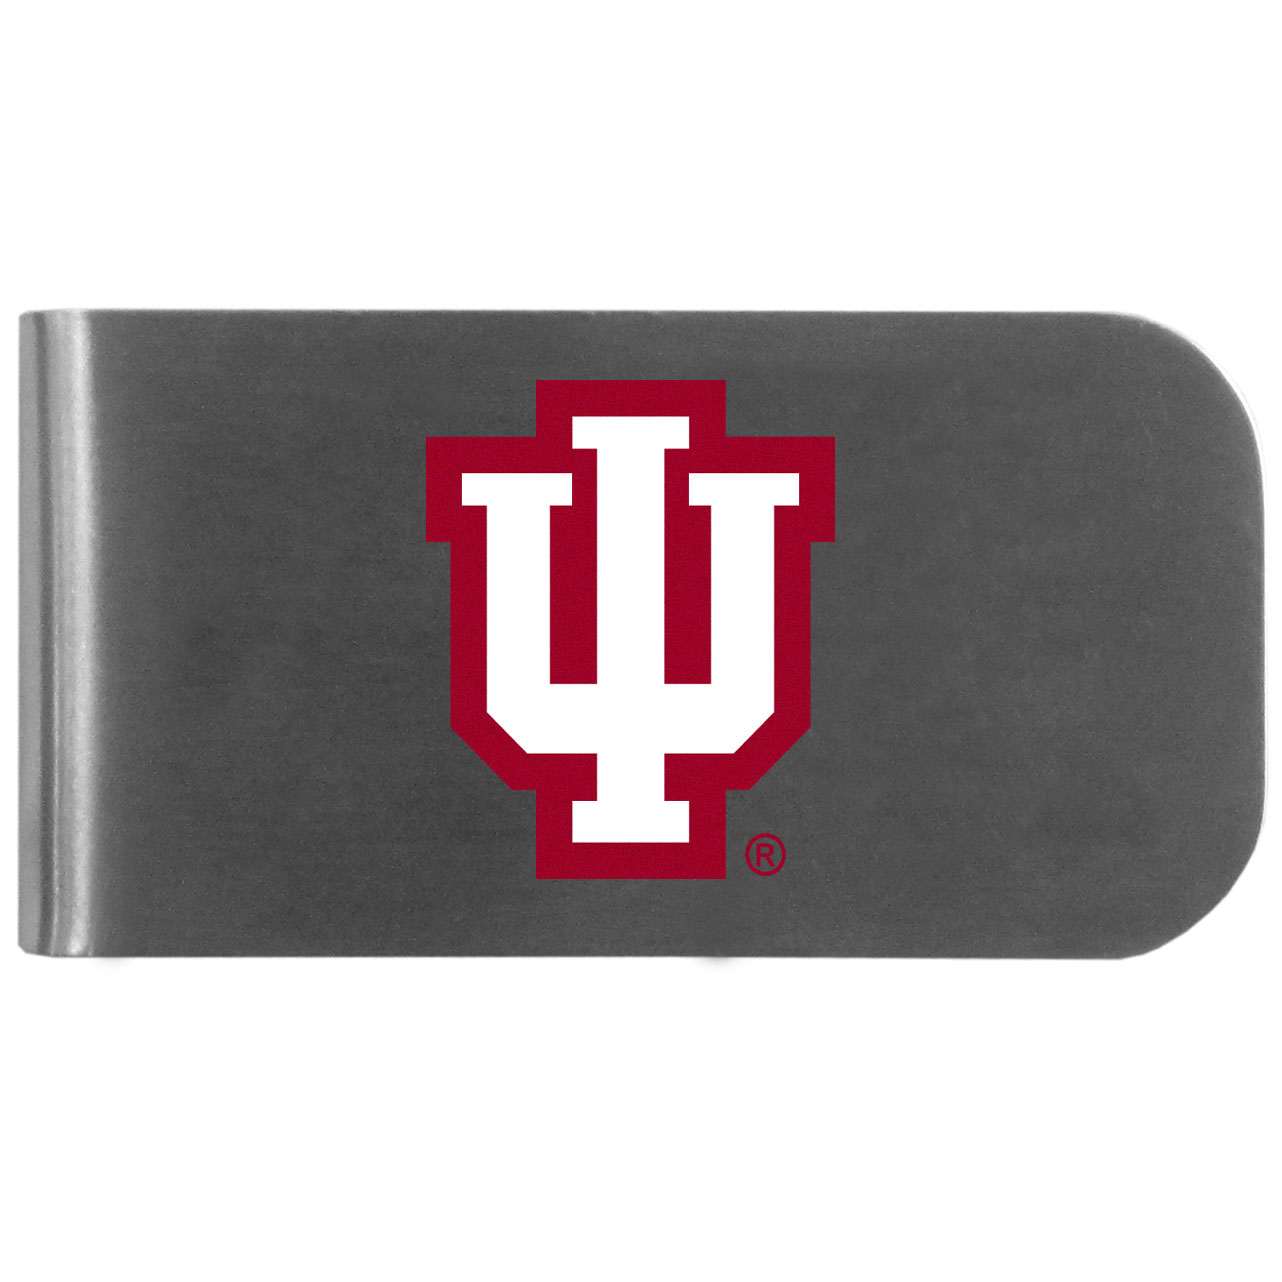 Indiana Hoosiers Logo Bottle Opener Money Clip - This unique money clip features a classic, brushed-metal finish with a handy bottle opener feature on the back. The clip has the Indiana Hoosiers logo expertly printed on the front of the clip.